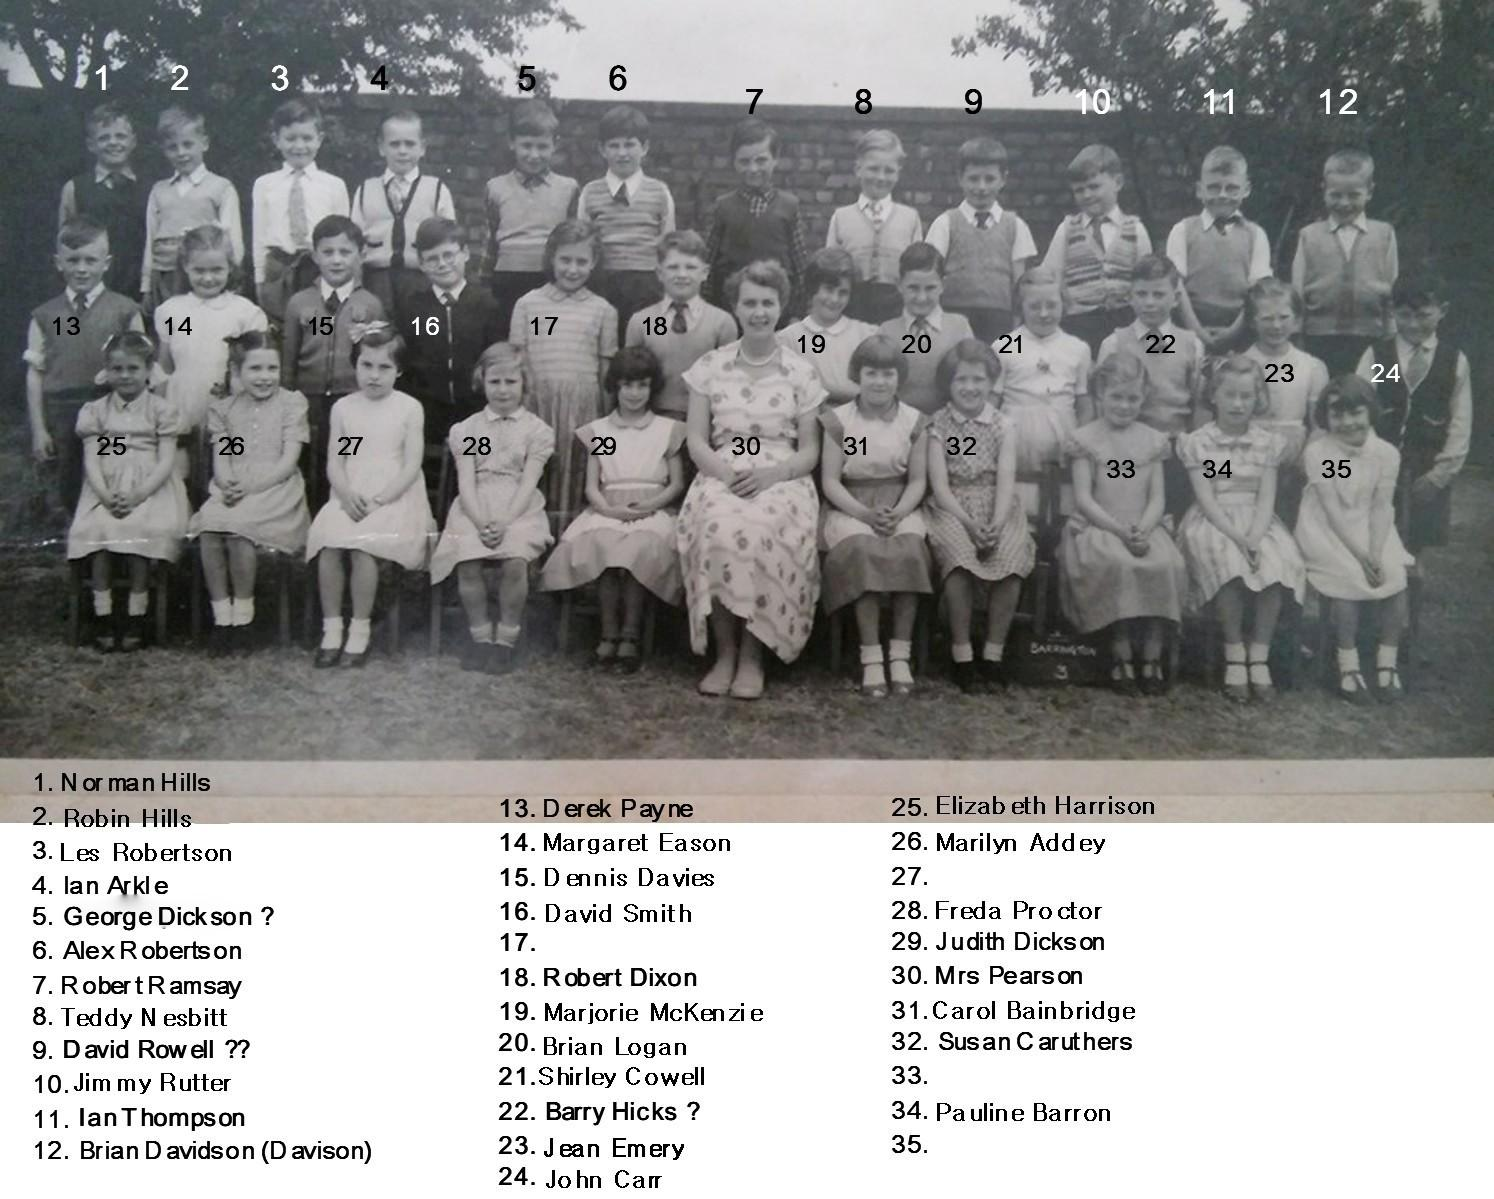 Barrington County Primary Class3 c1956 with names